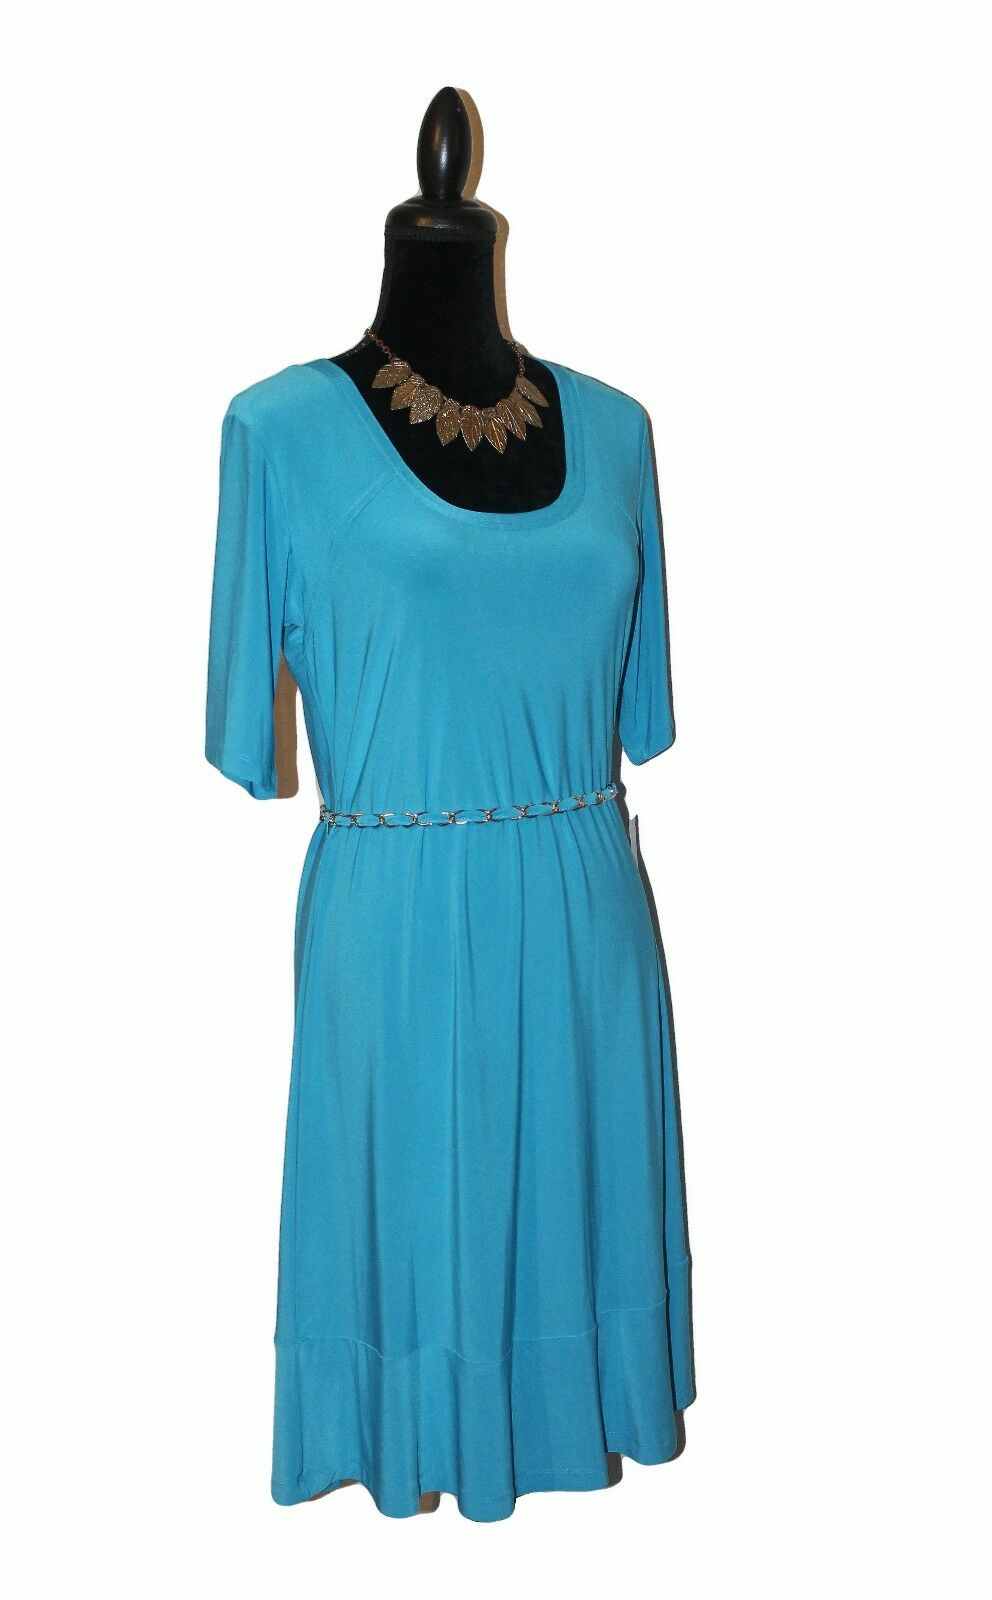 NWT NWT NWT Nina Leonard Miracle Matte Jersey Dress - Sz Medium- ea810b